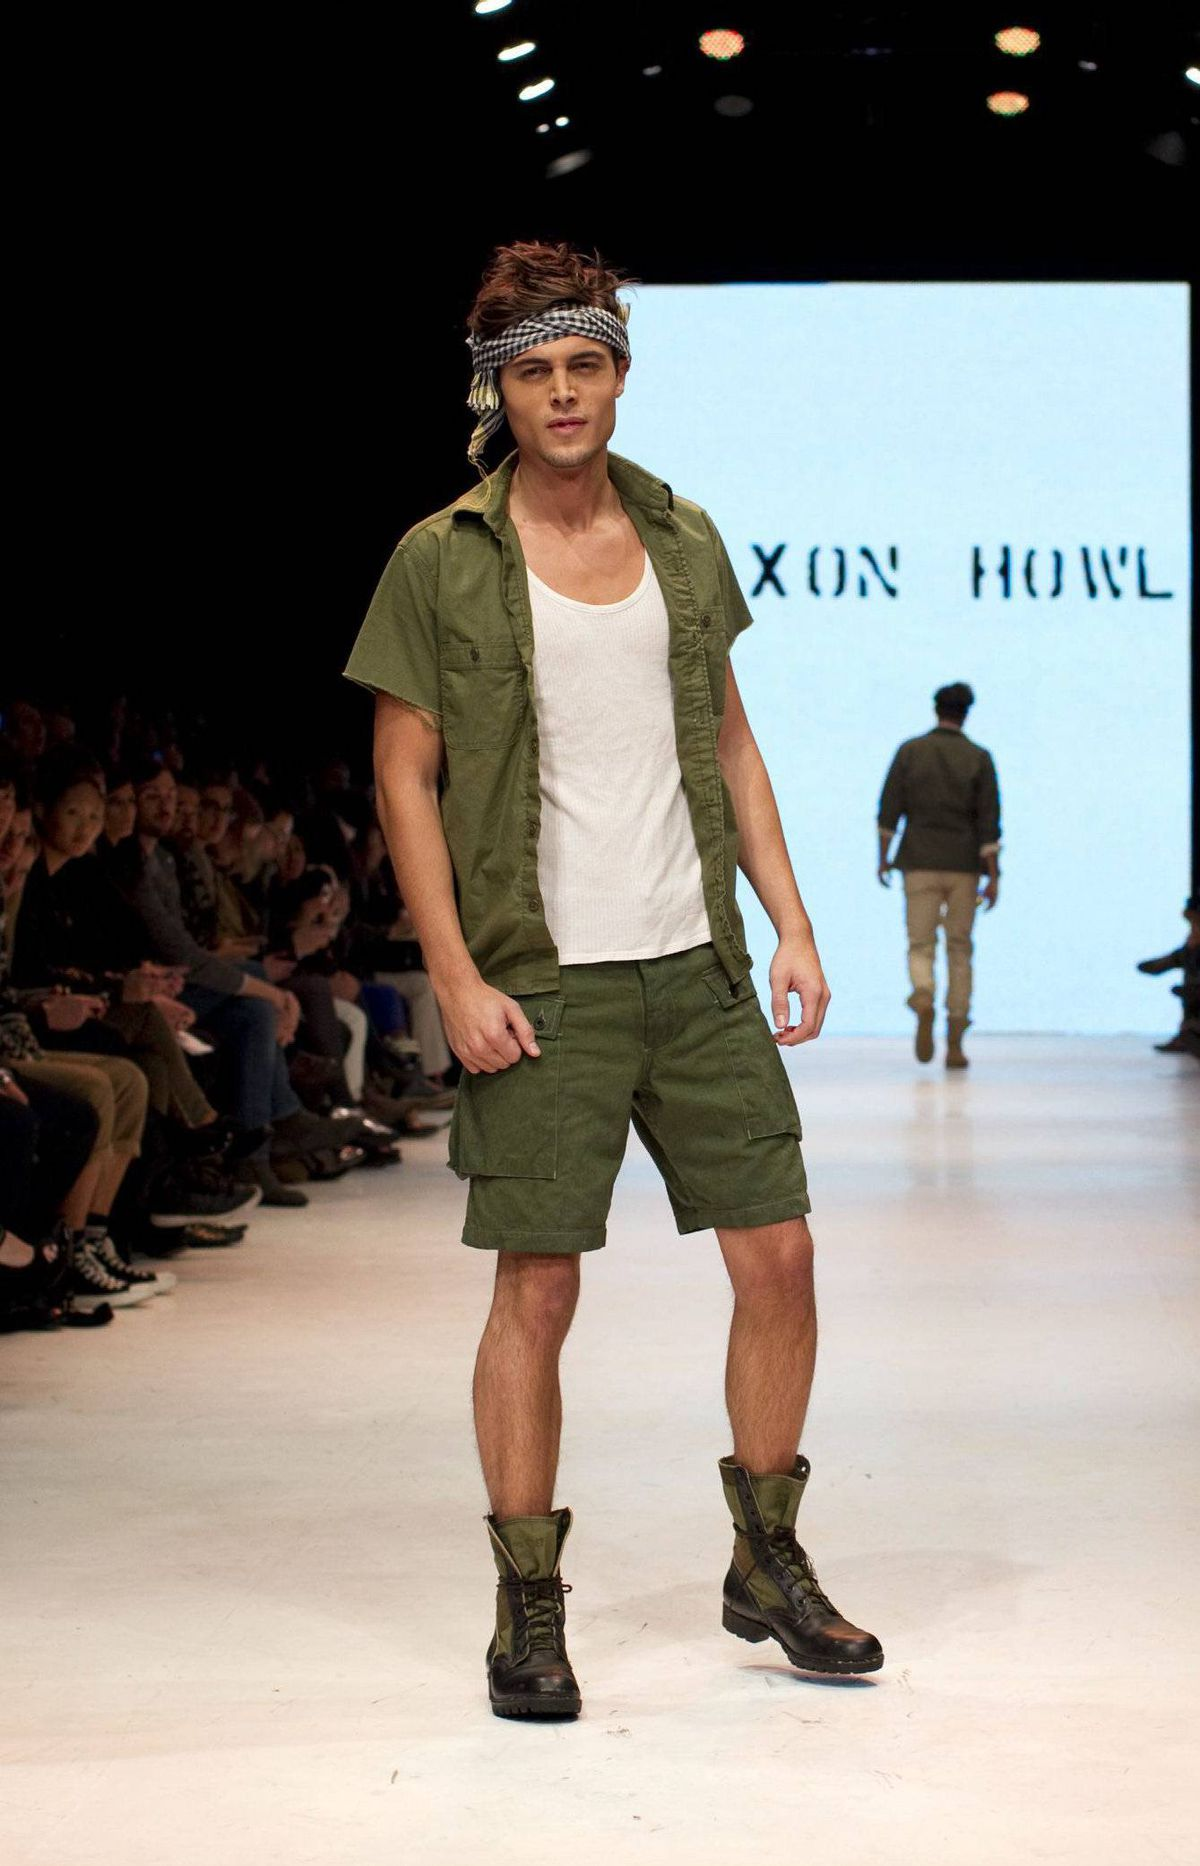 """Cargo pants and workman's shirts with rolled-up sleeves drove home the """"boys will be boys"""" vibe with an emphasis on pairing down the frills and focusing on the basics."""